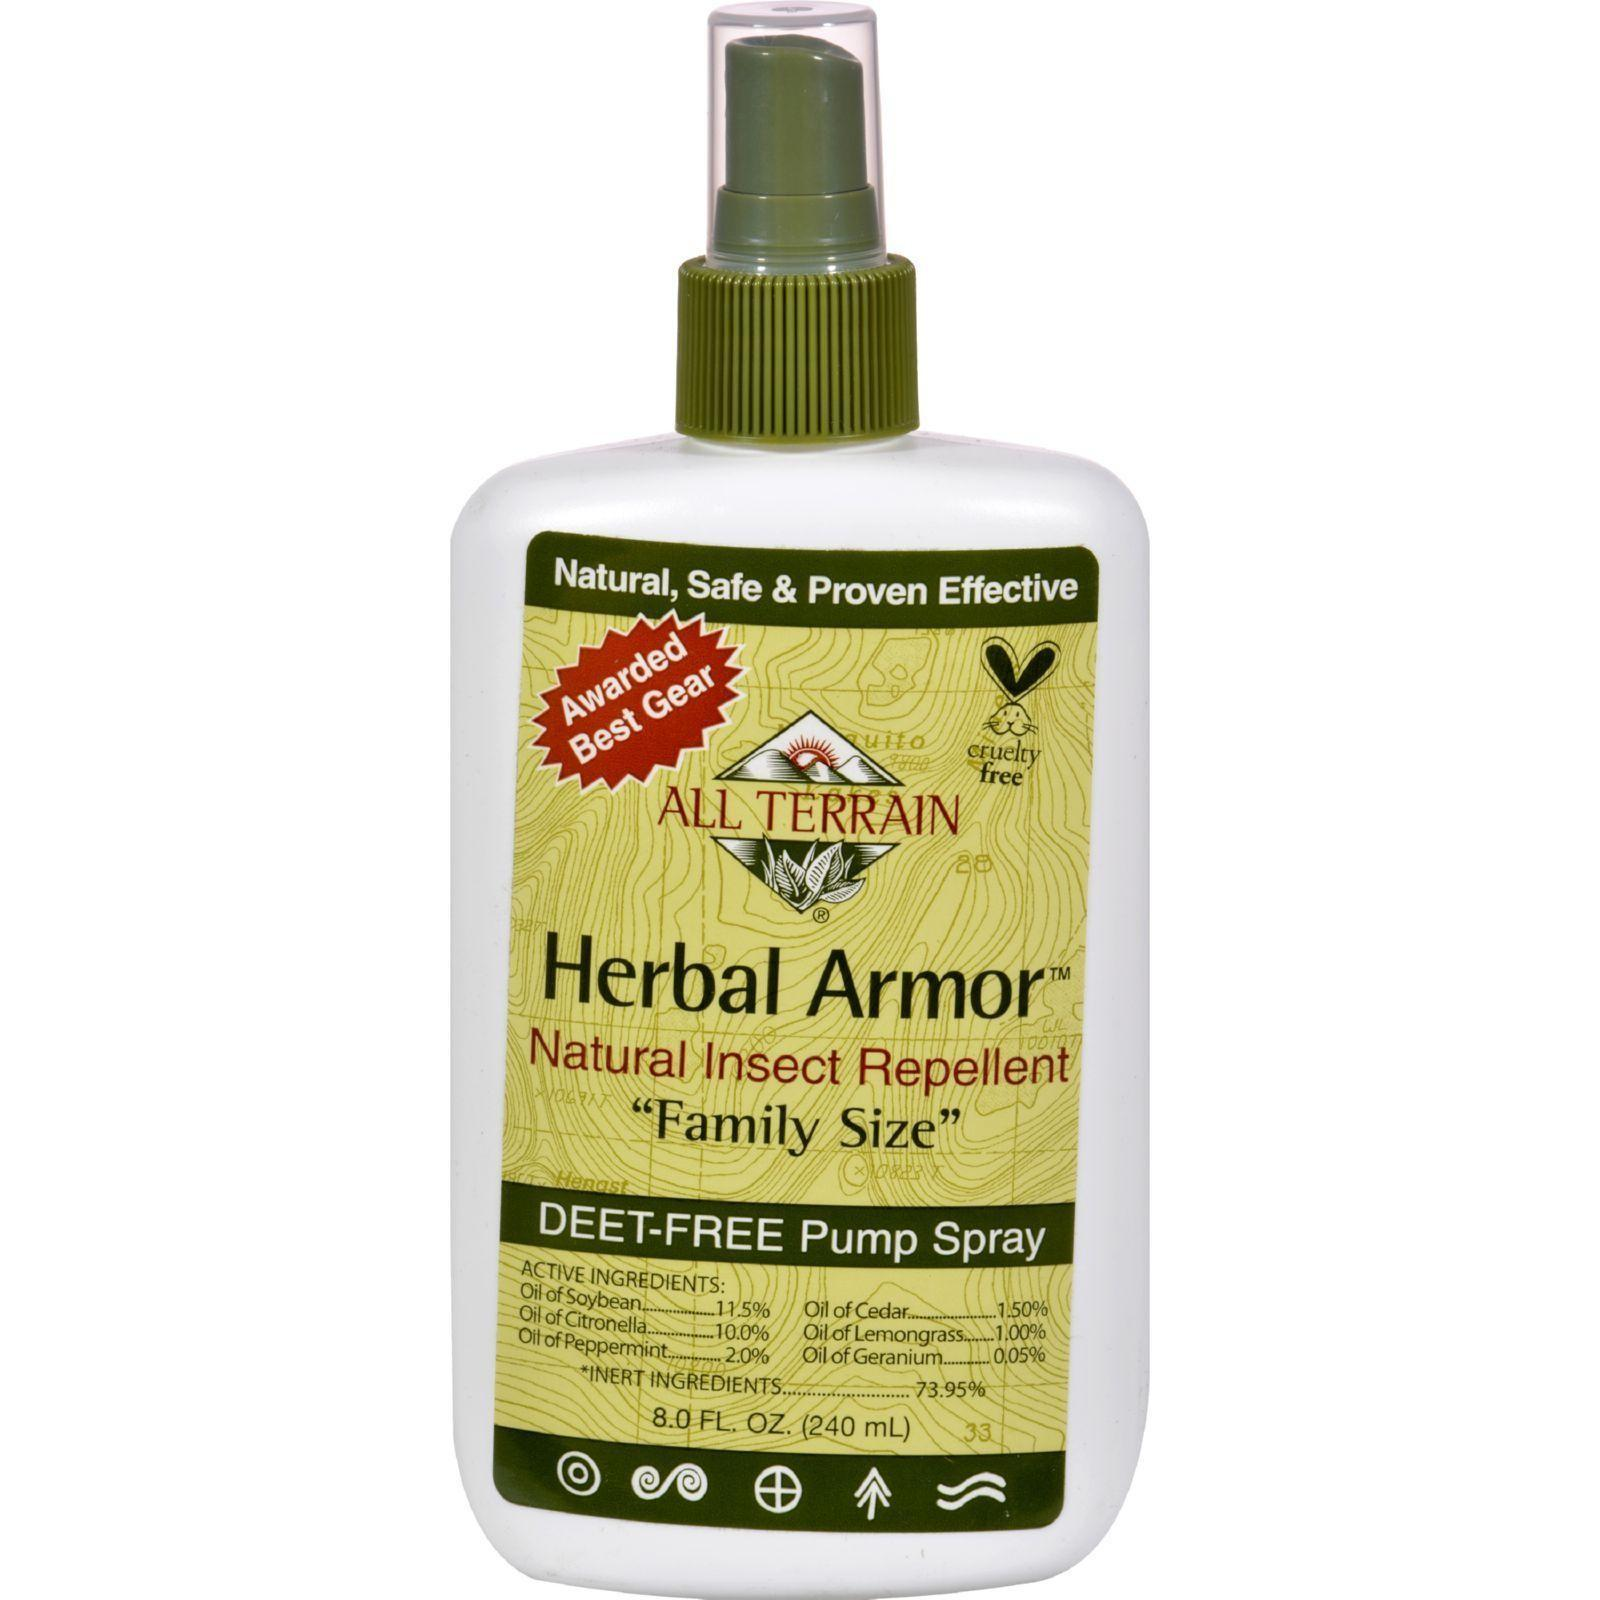 All Terrain Herbal Armor Natural Insect Repellent Family